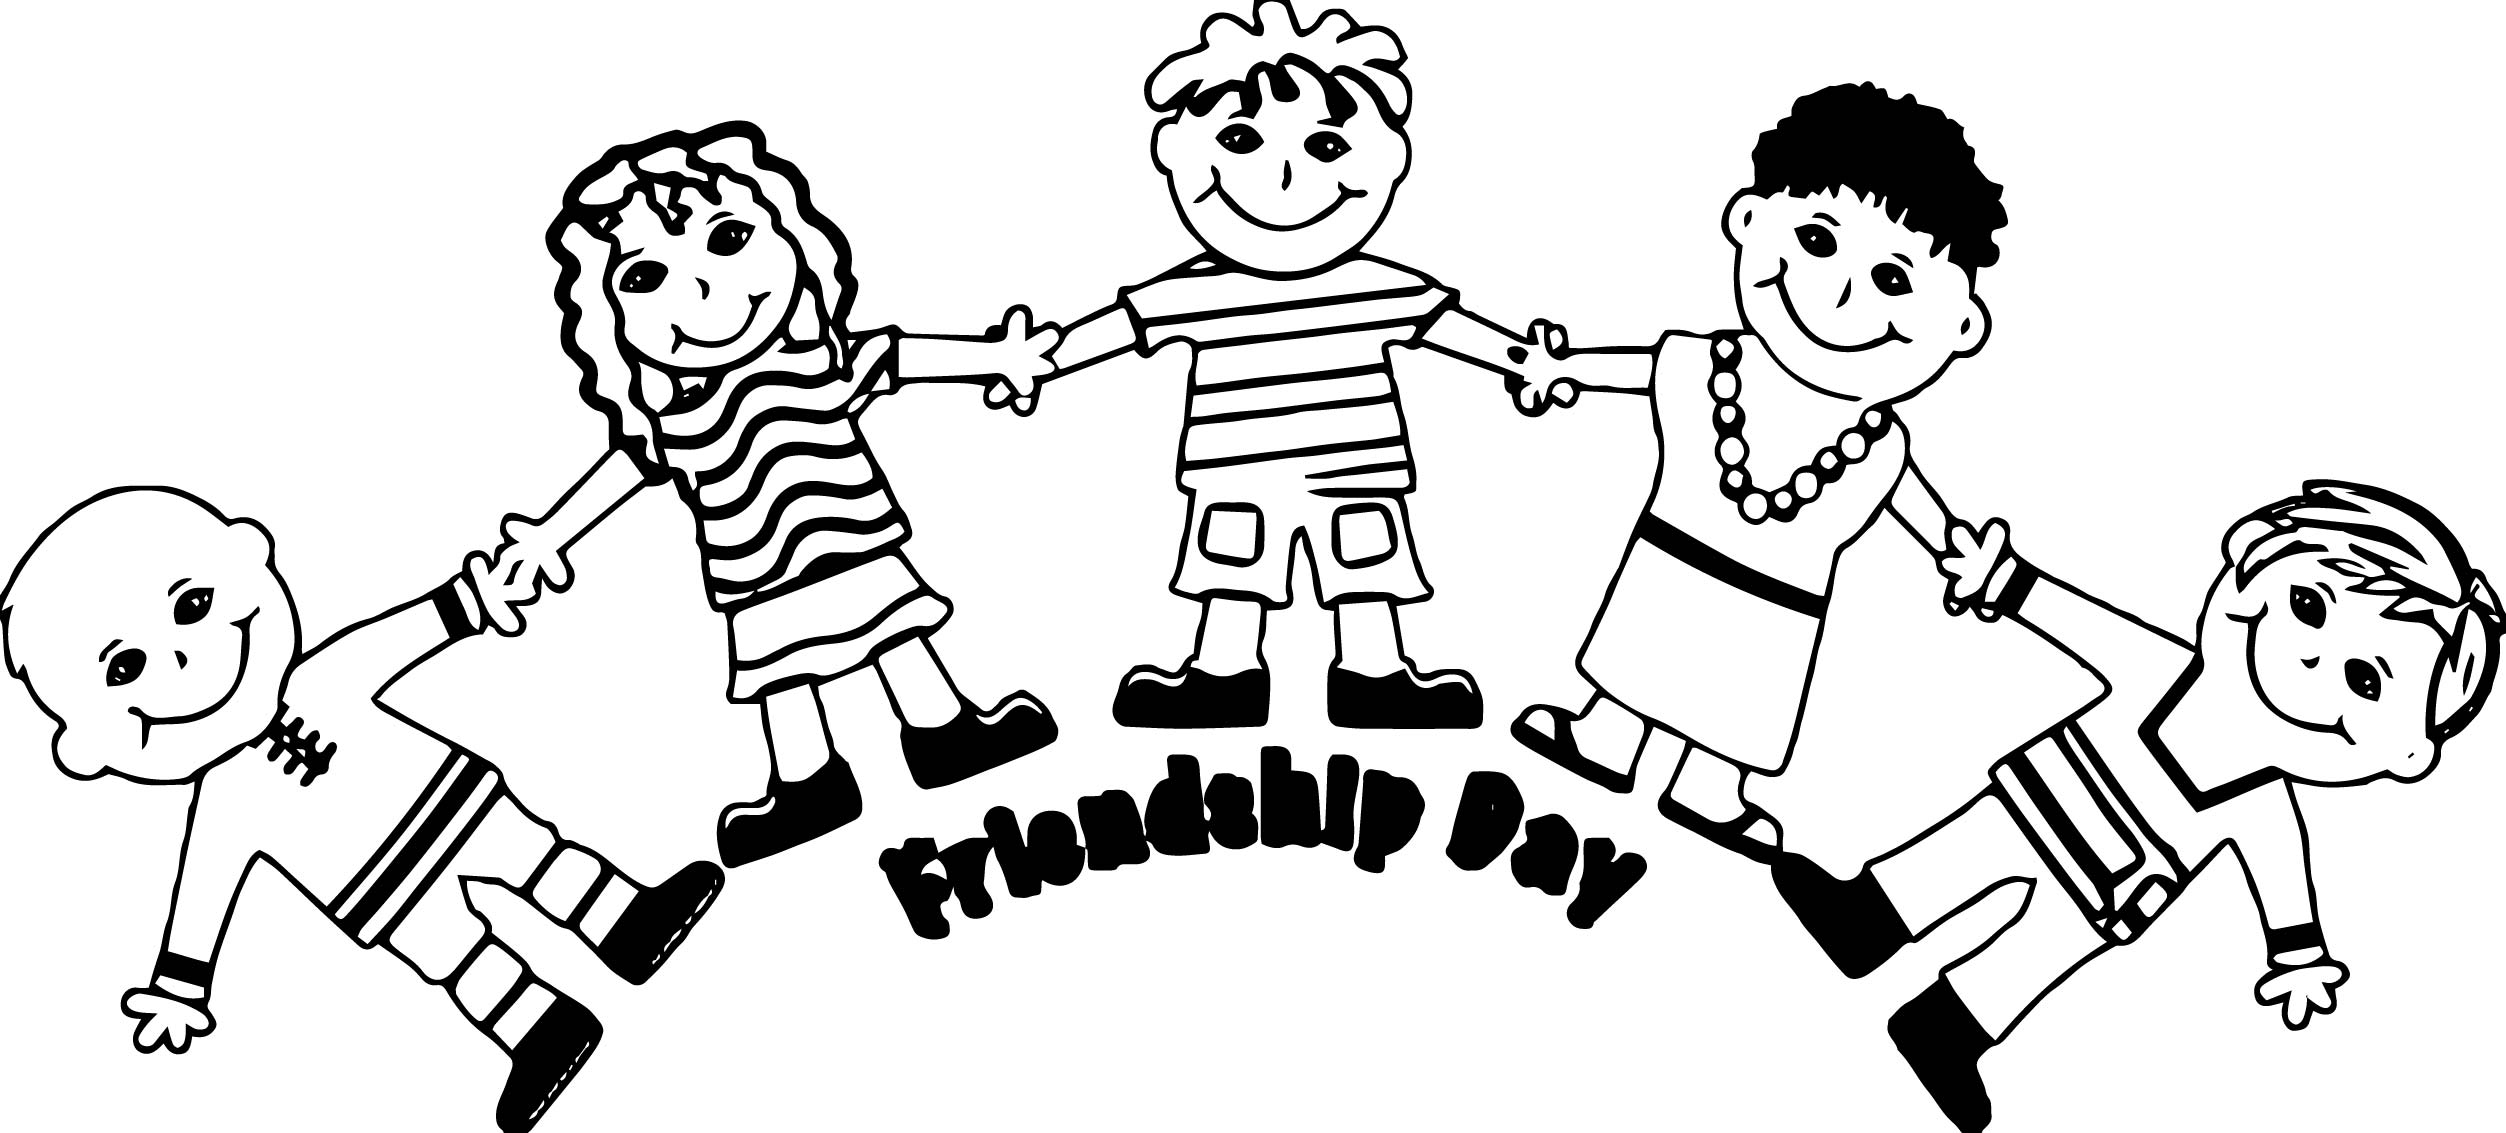 Making Friends Coloring Sheets Coloring Coloring Pages